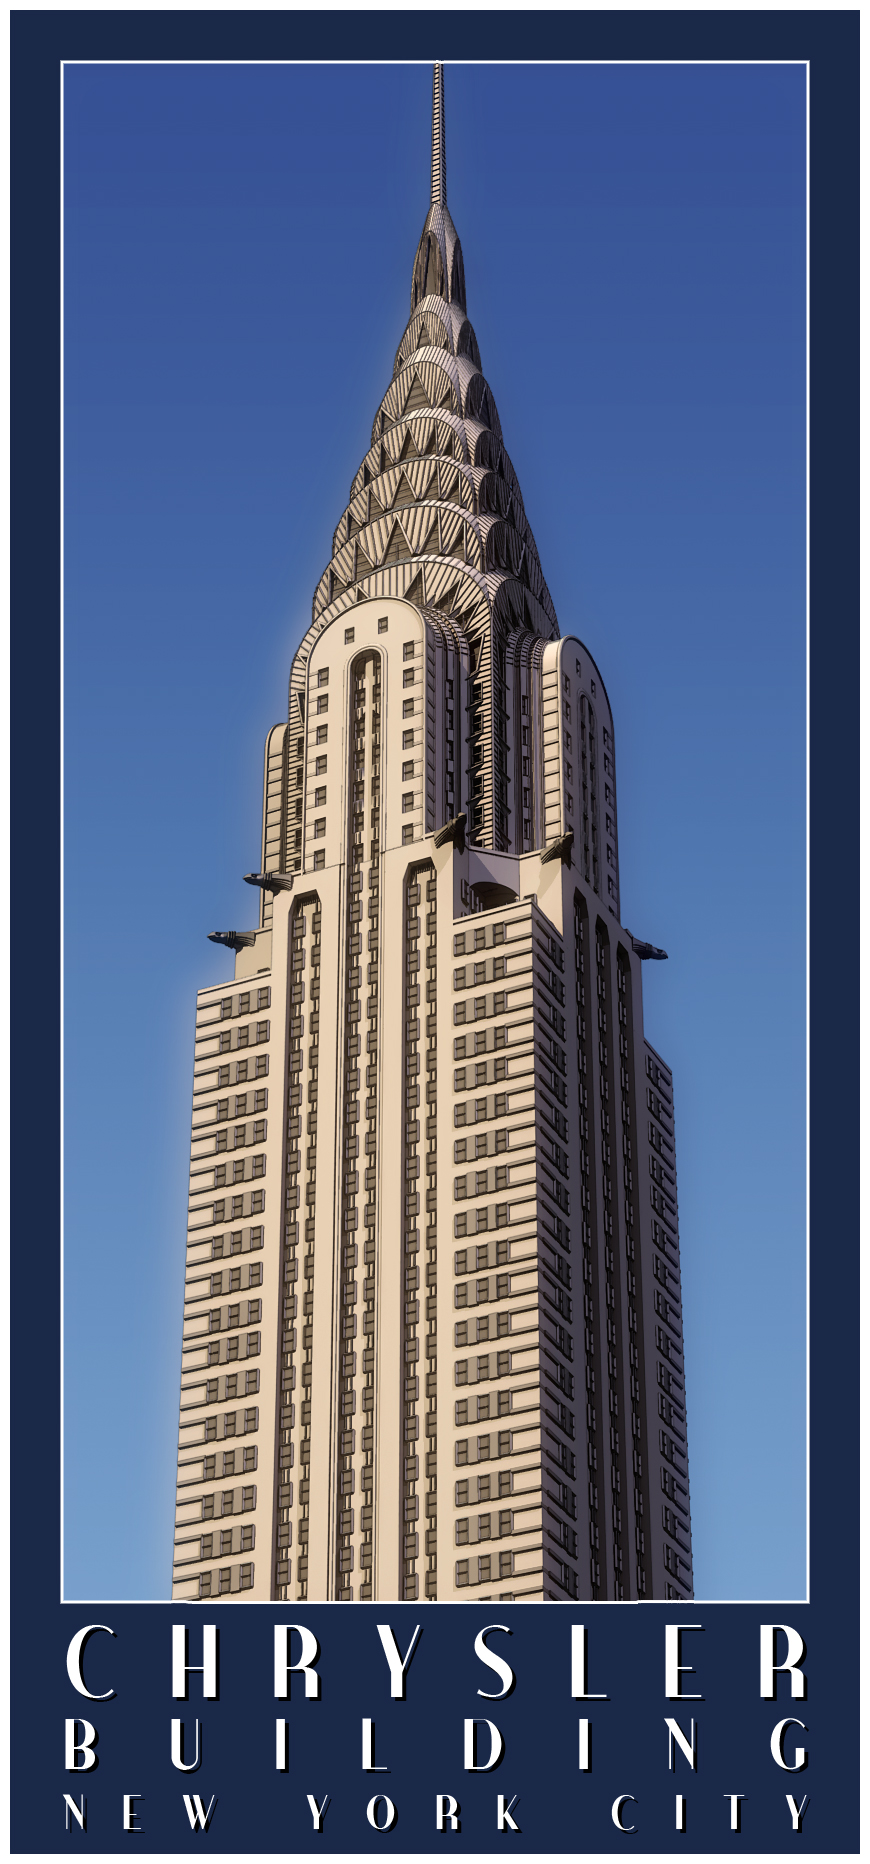 the chrysler building by owen c on deviantart. Cars Review. Best American Auto & Cars Review